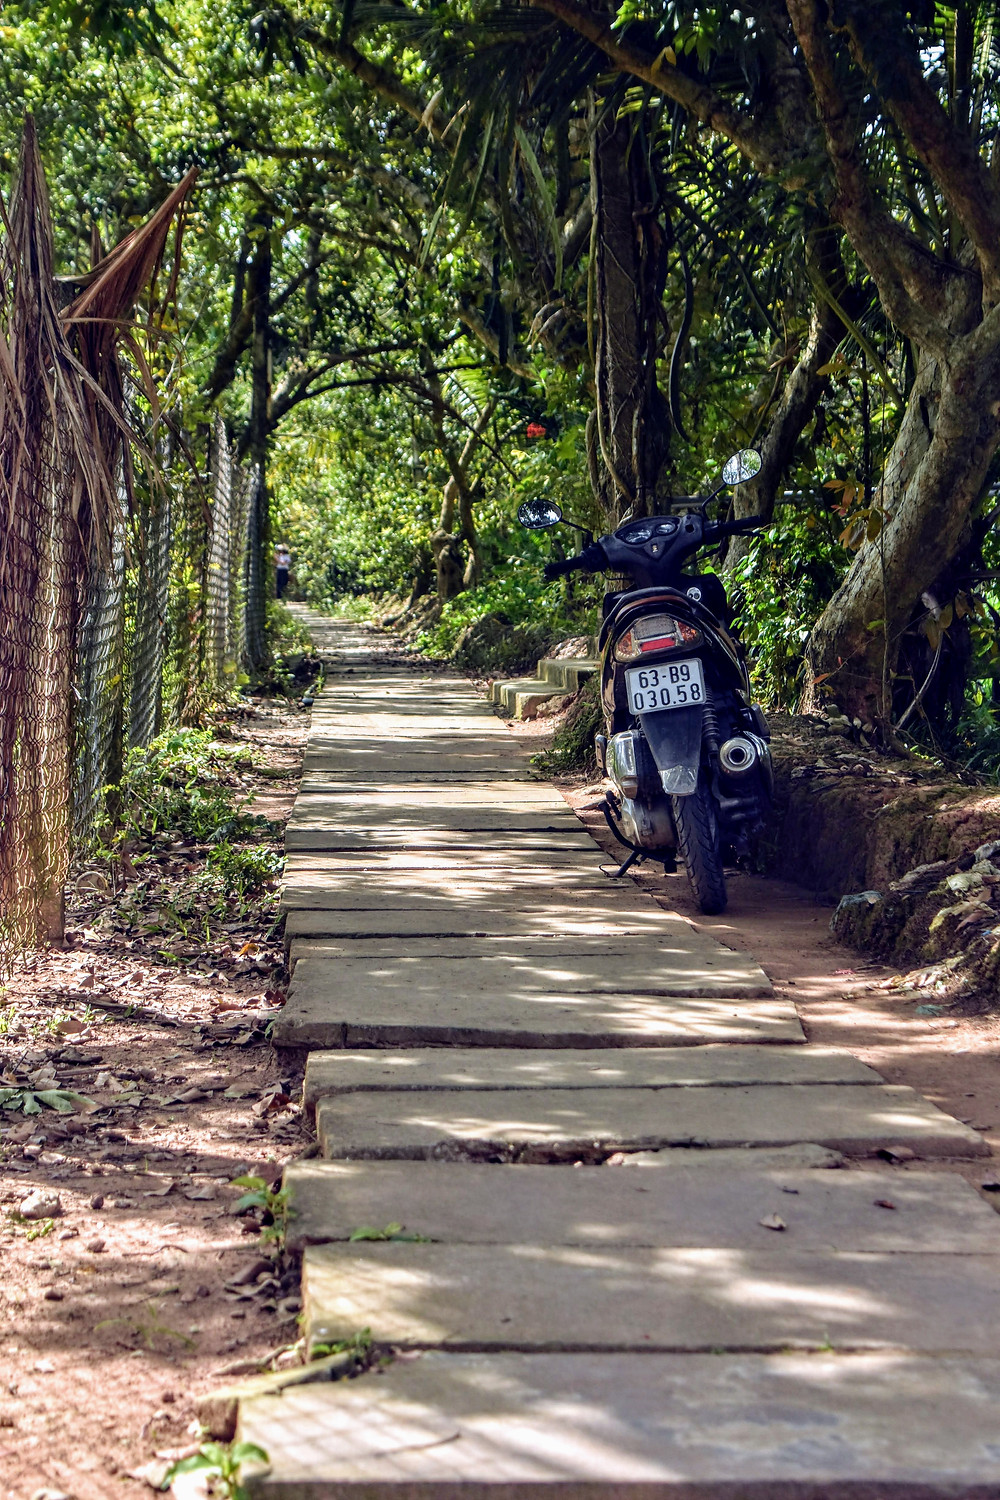 moped on rural path